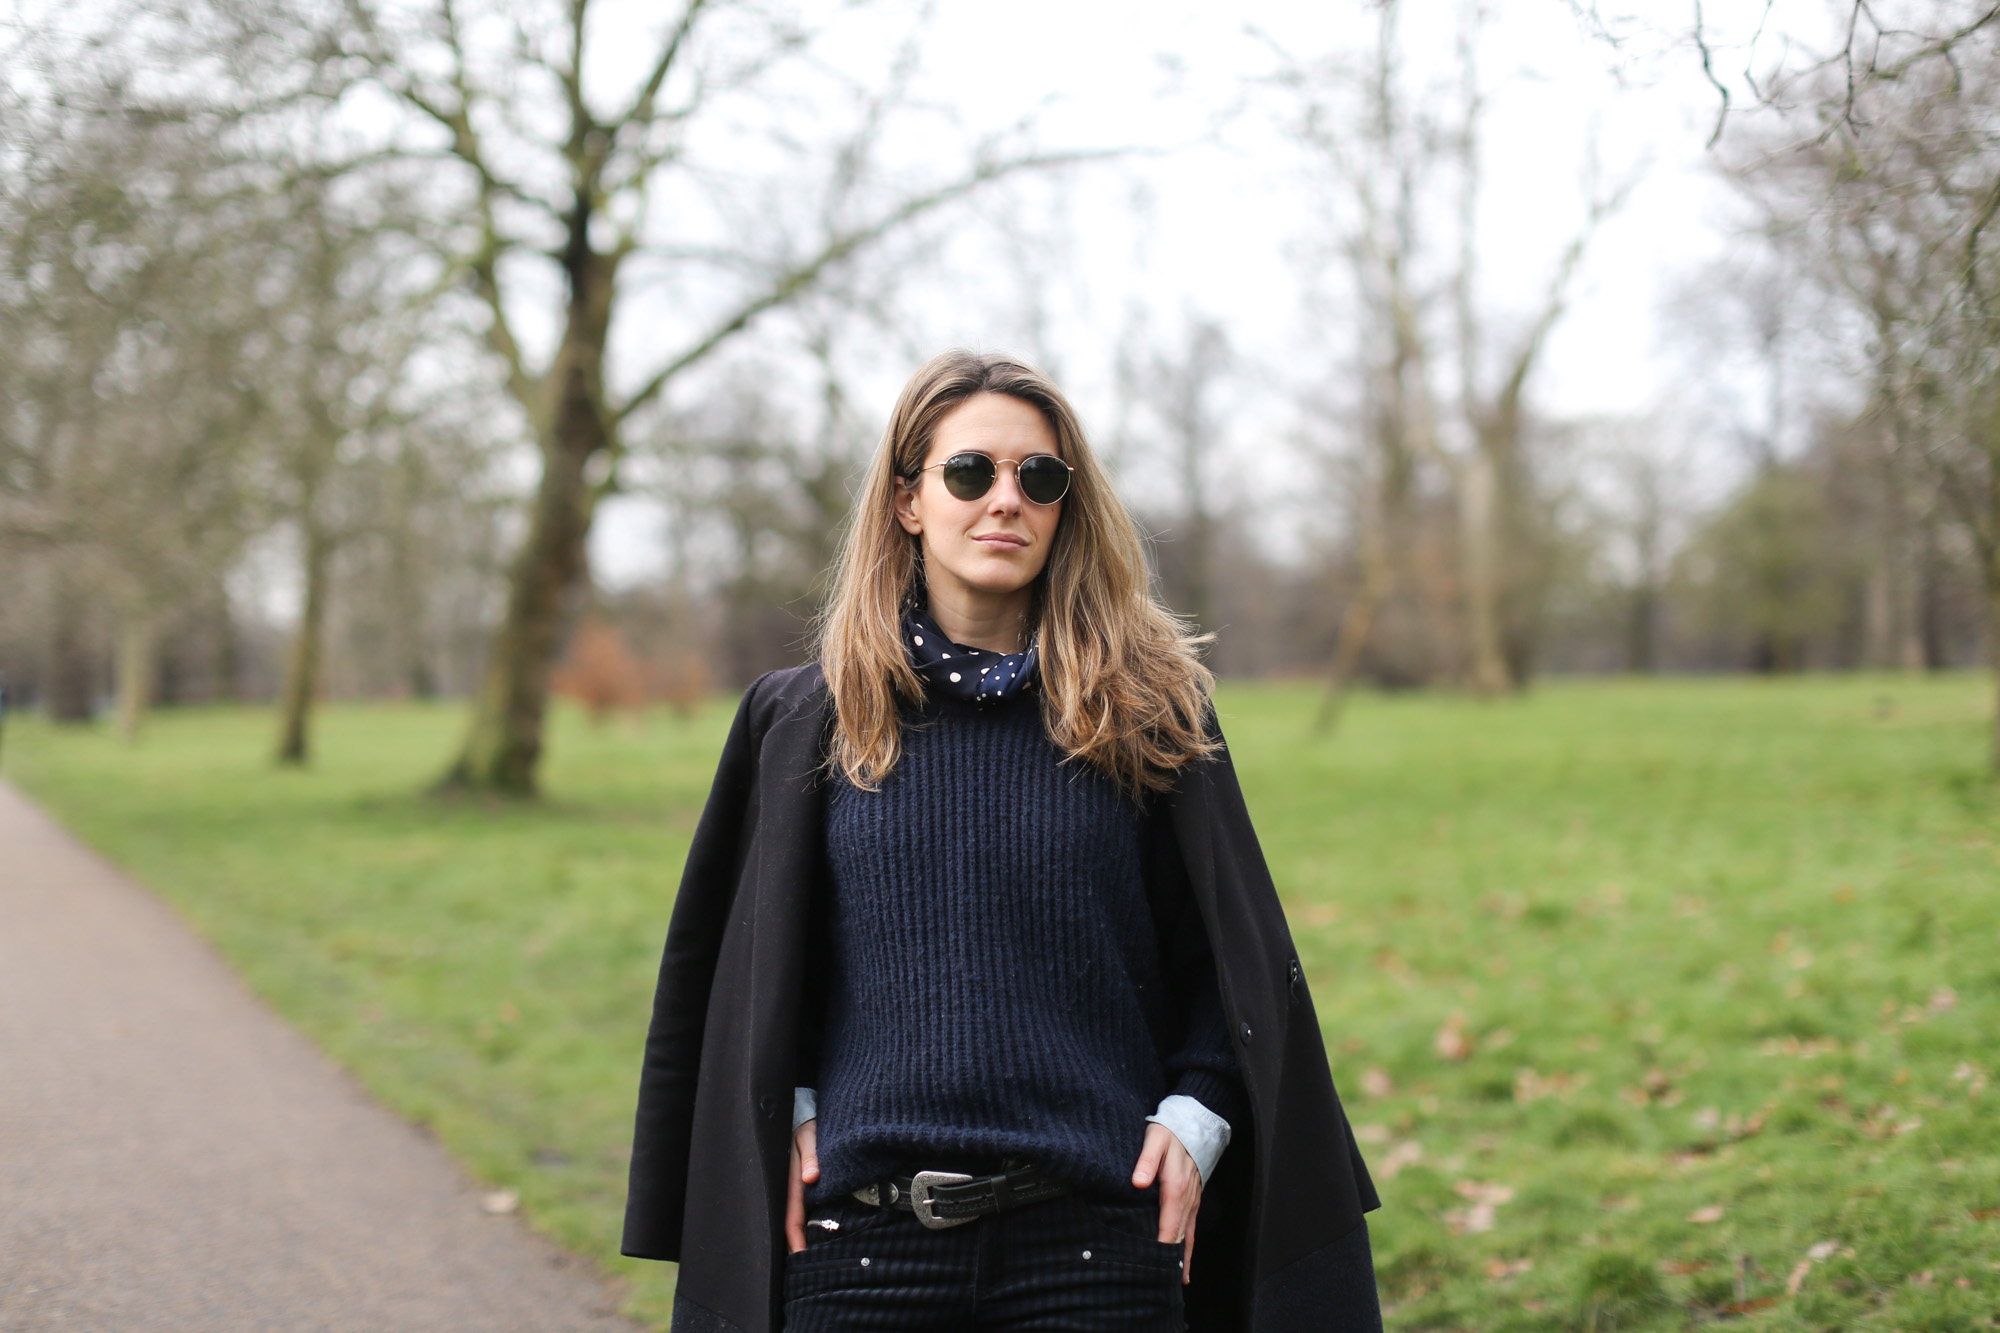 Clochet-streetstyle-london-hyde-park-cos-coat-navy-chunky-knit-2